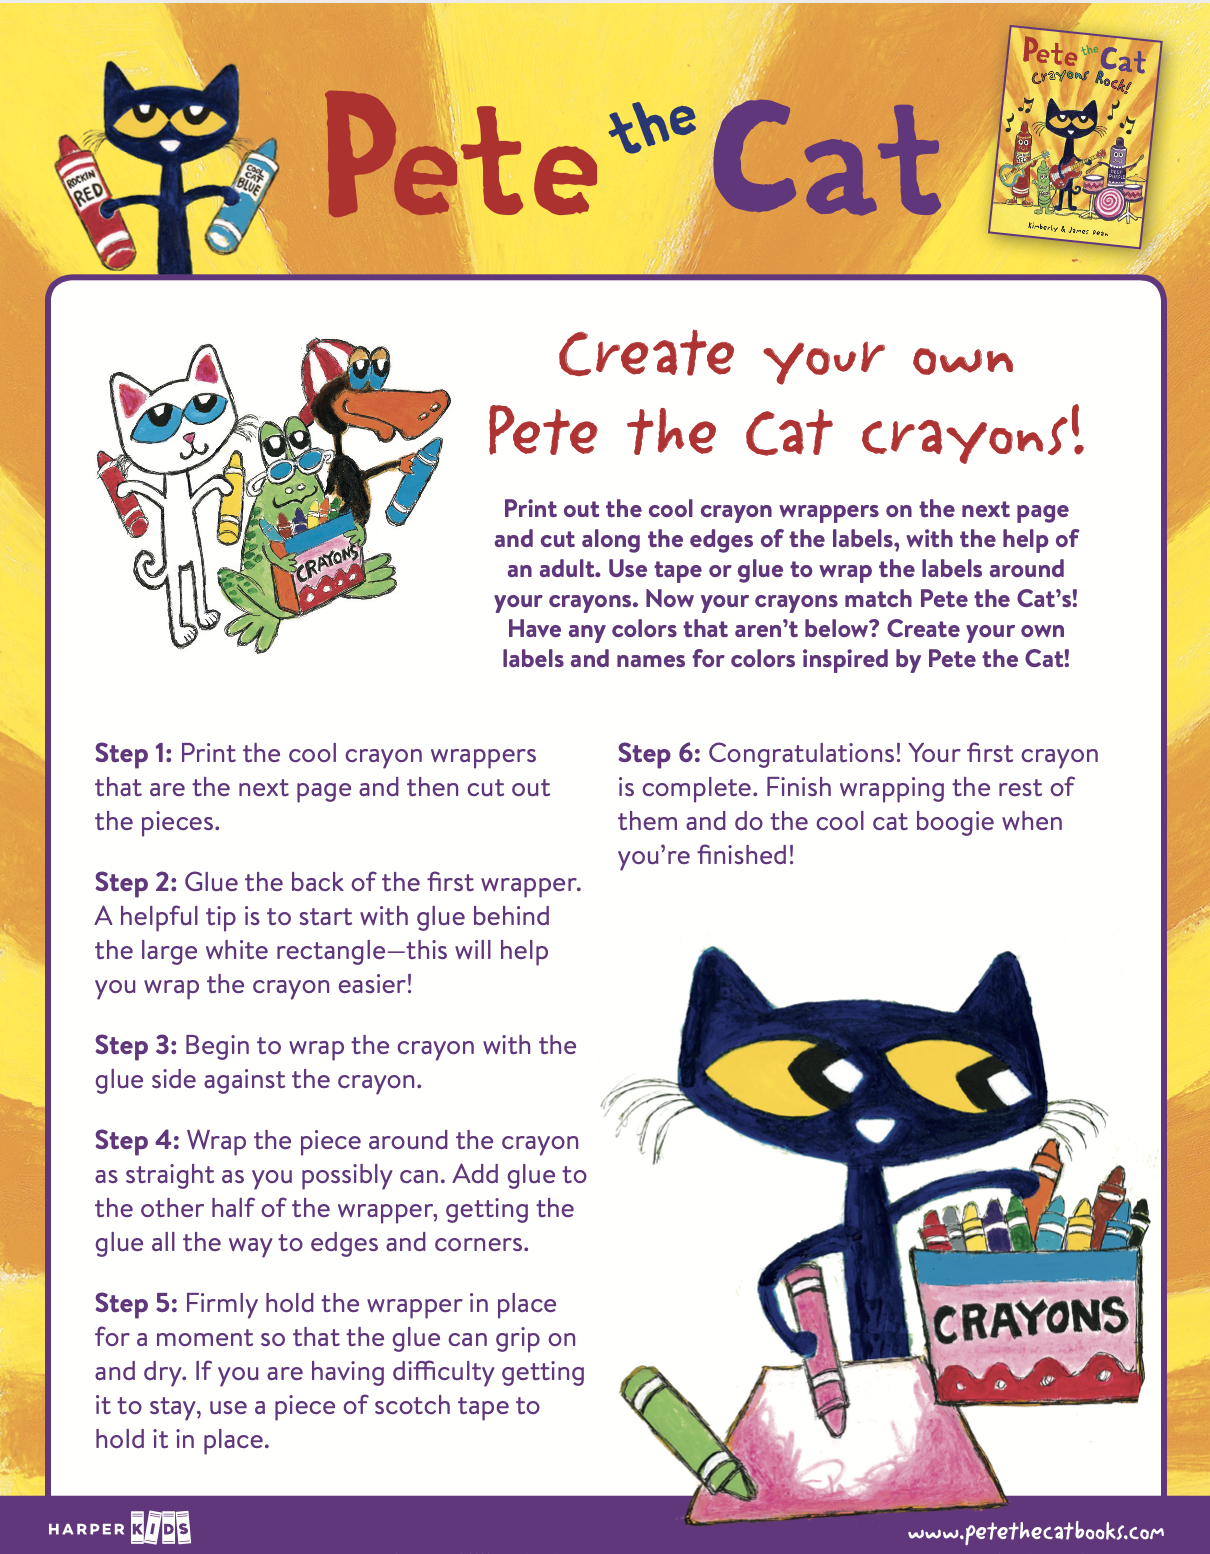 Create your own Pete the Cat crayons!